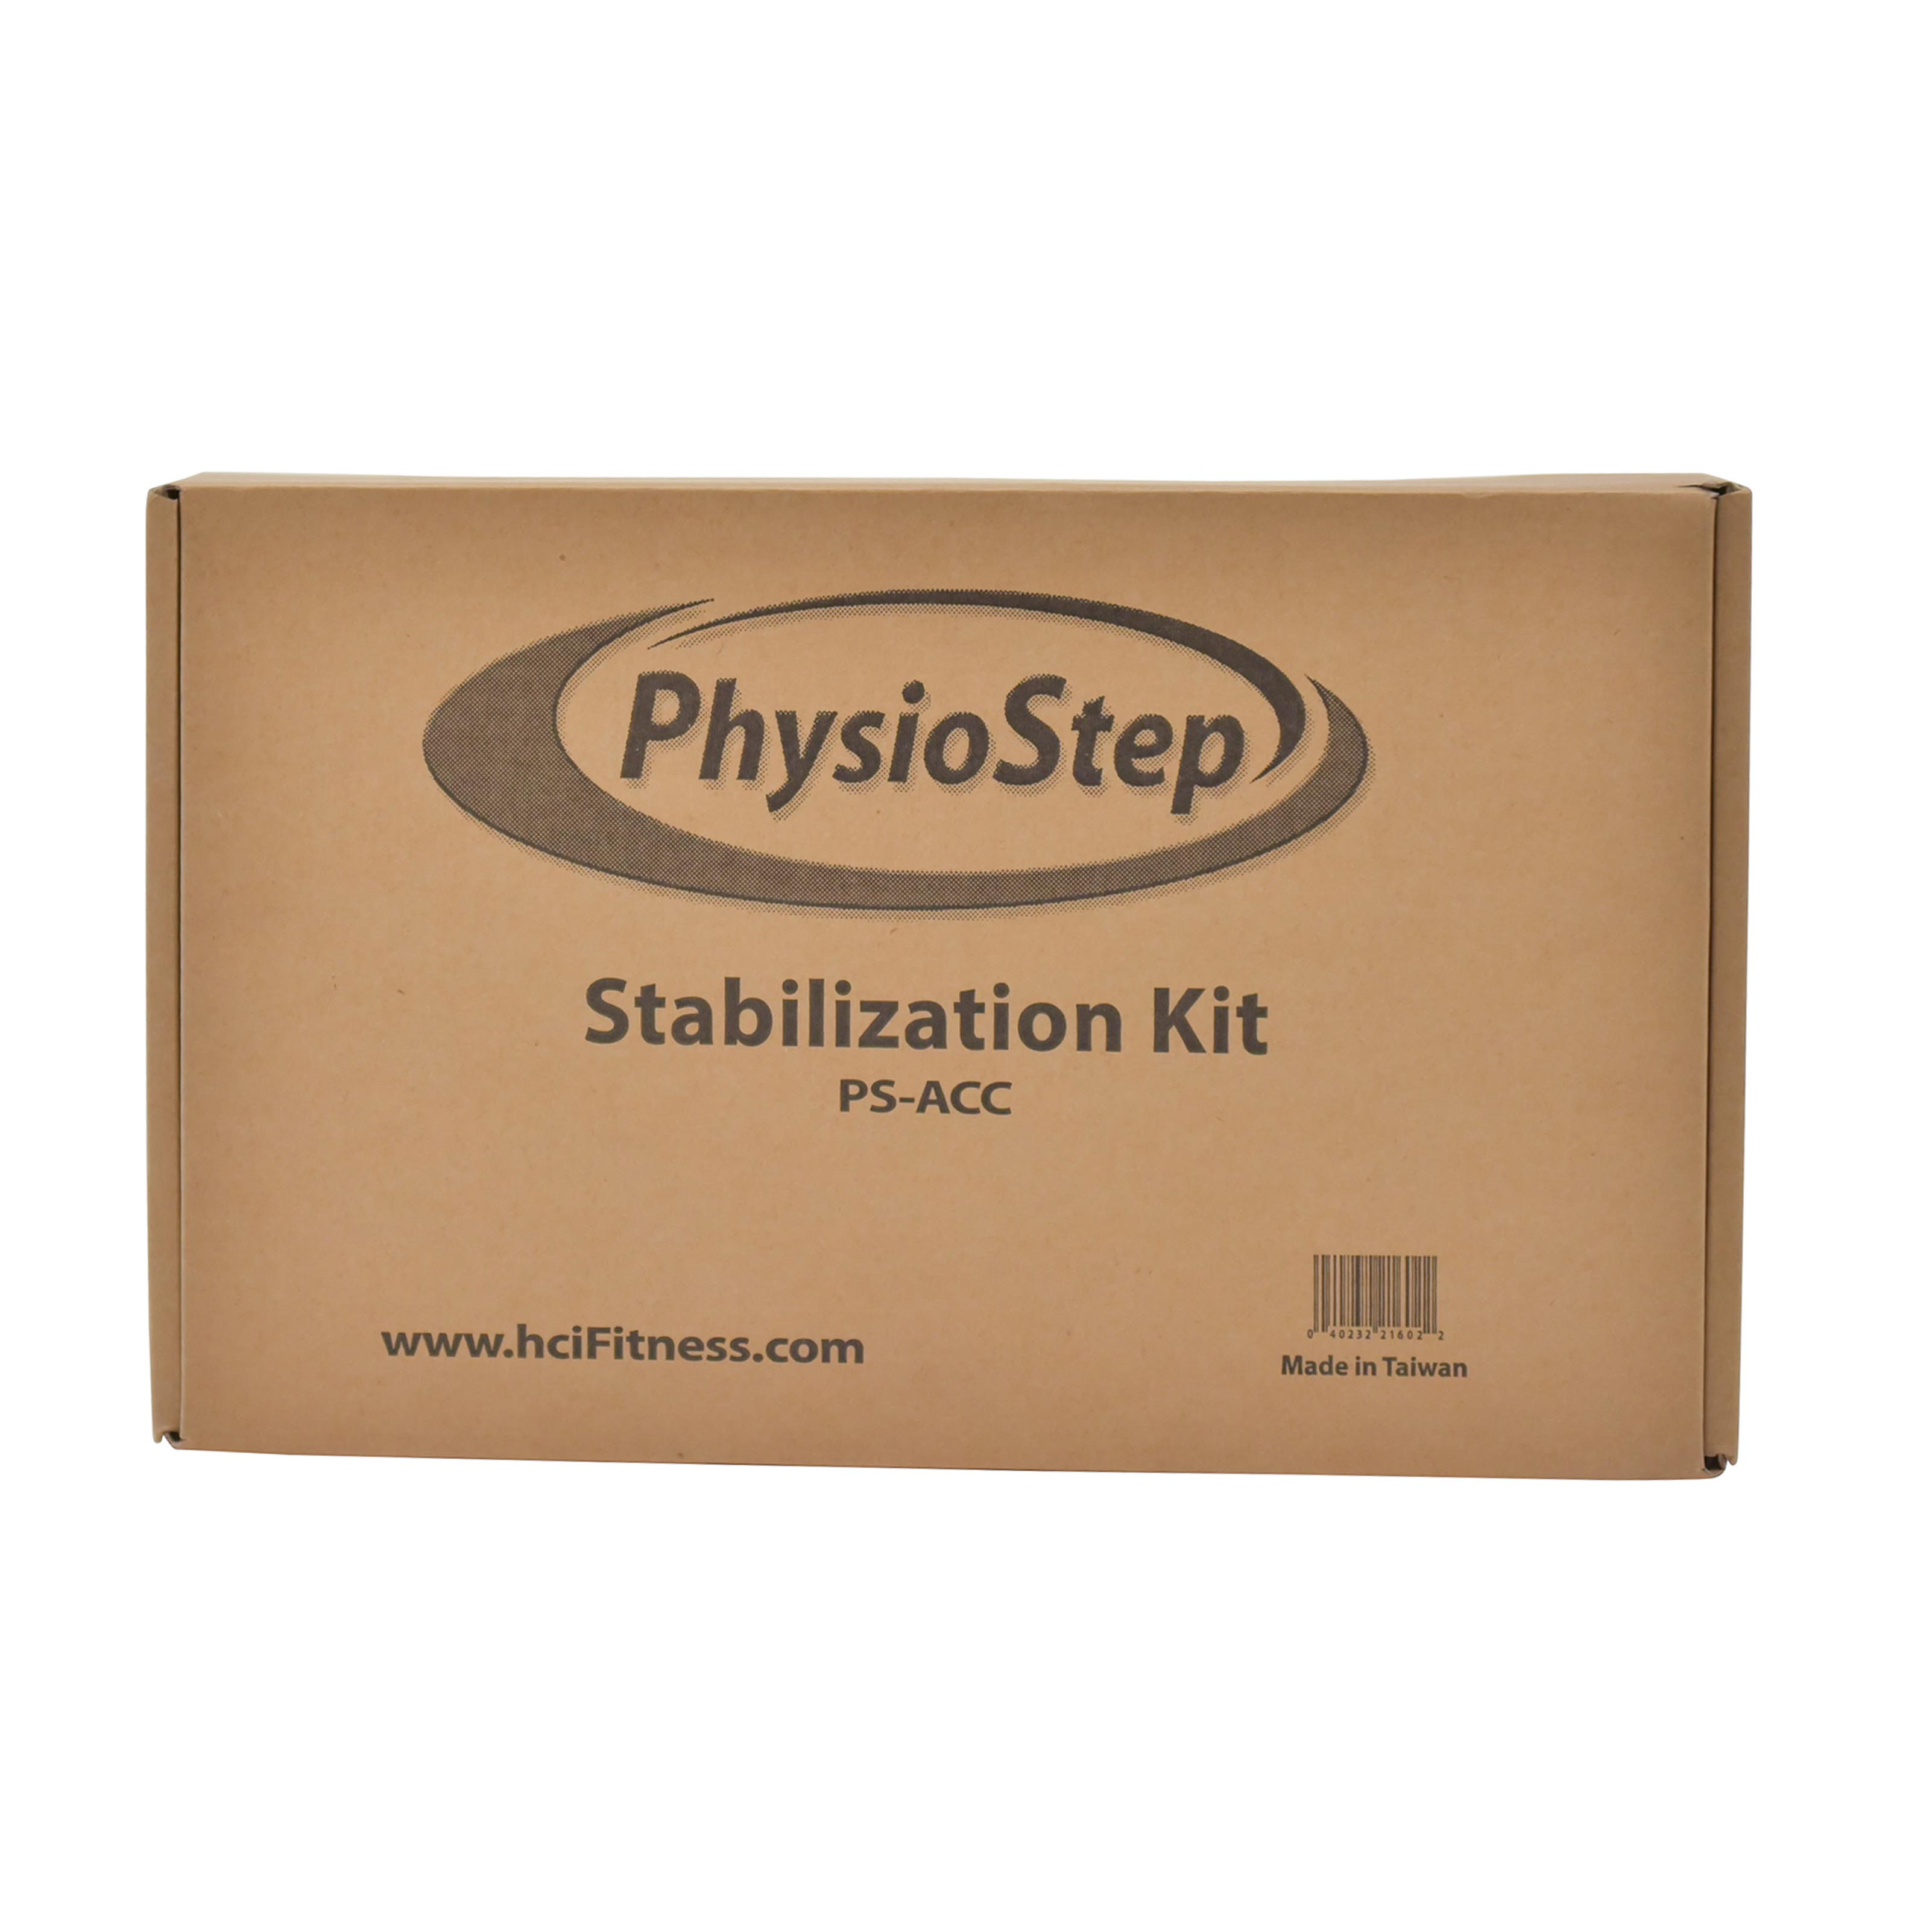 PhysioStep Stabilization Kit